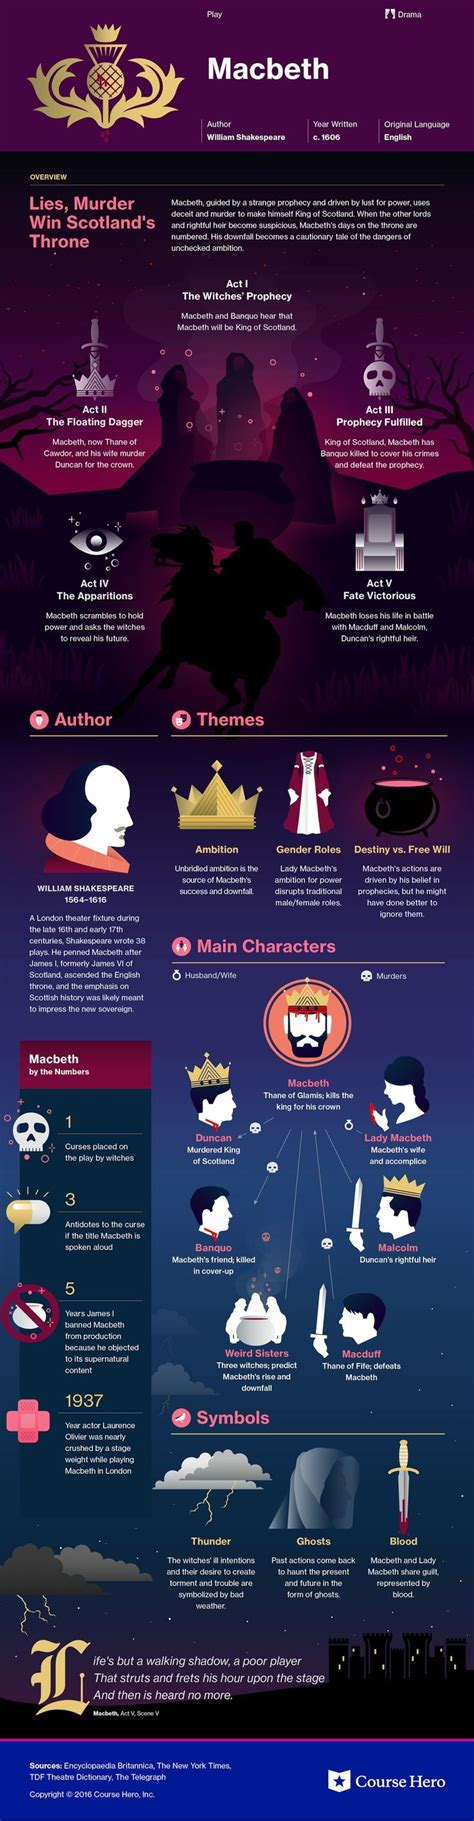 themes explored in macbeth 25 best ideas about macbeth book on pinterest teaching